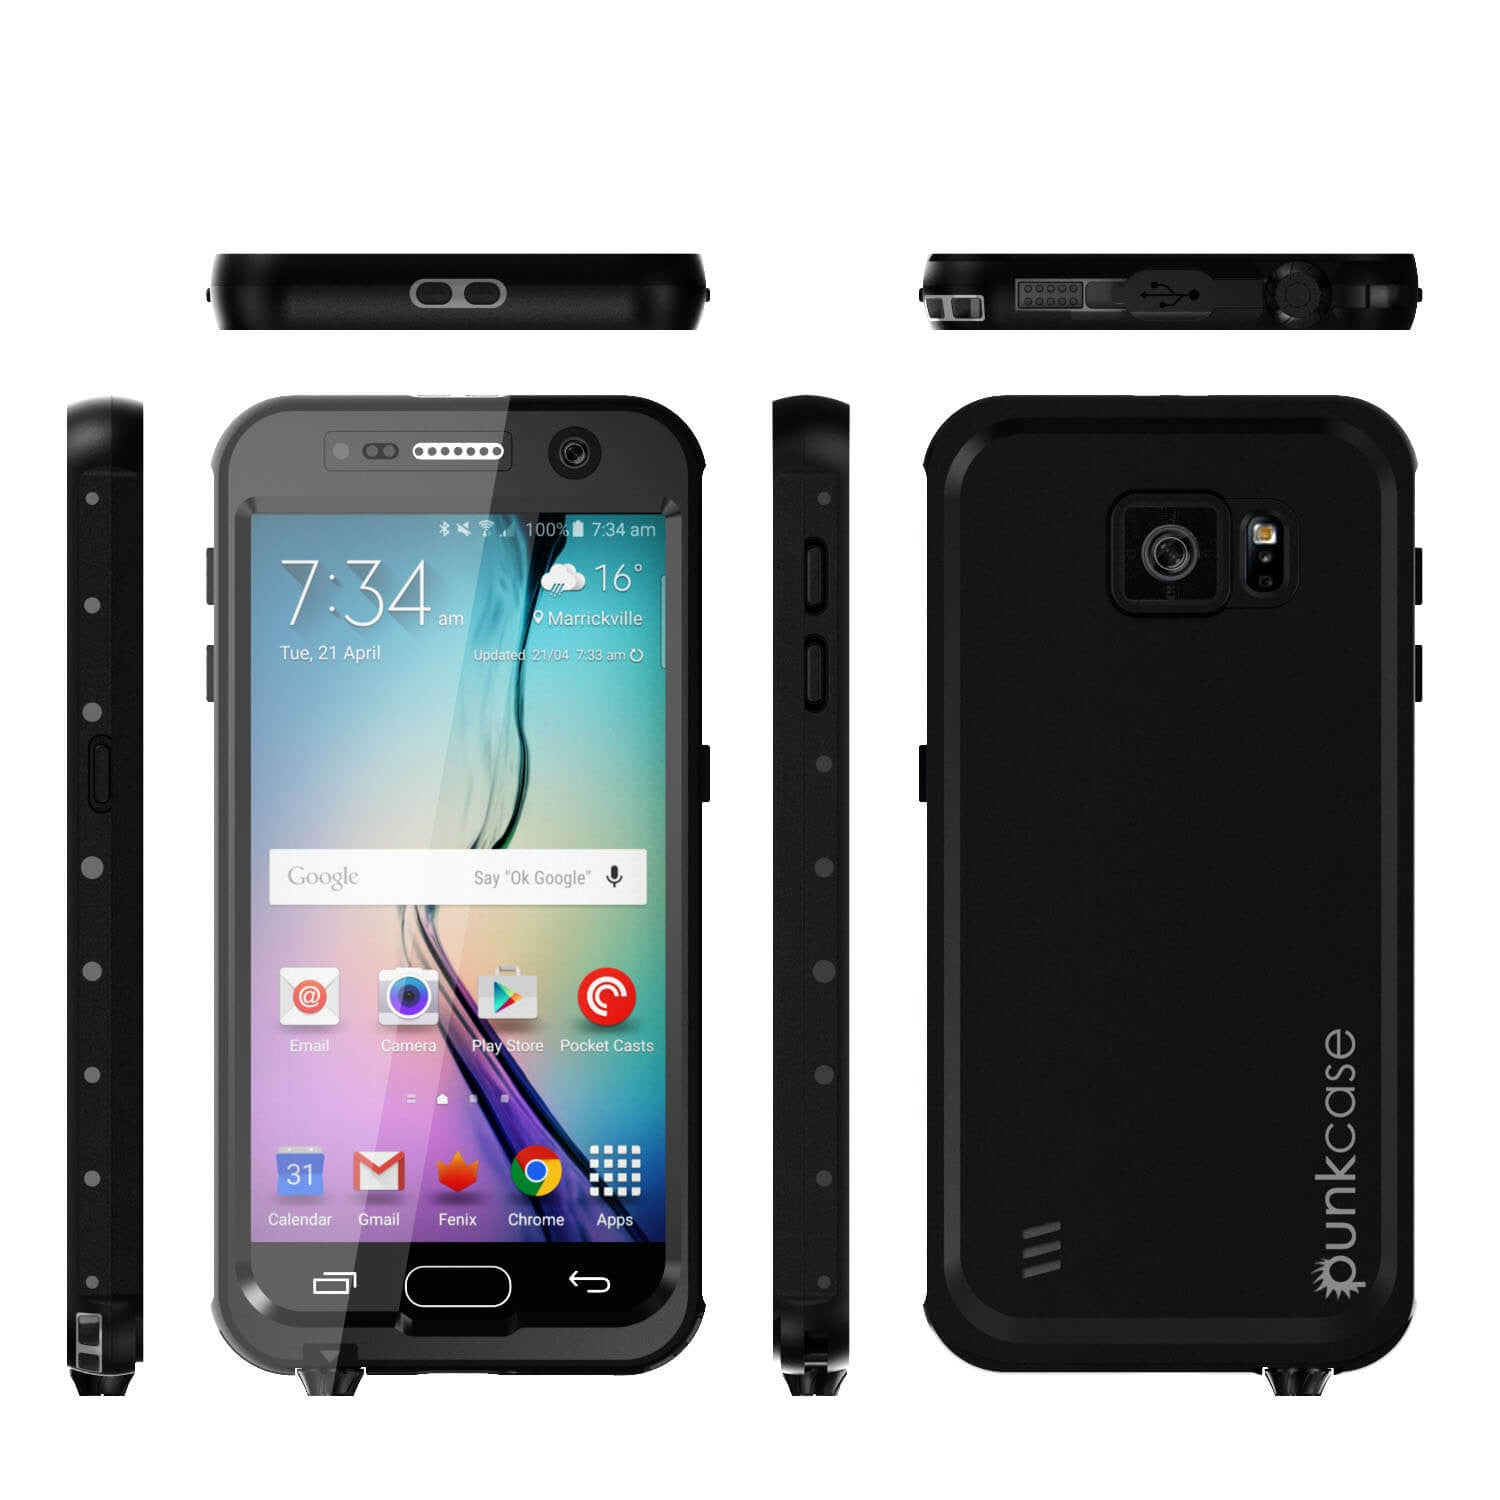 Galaxy S6 Waterproof Case PunkCase StudStar Black Thin 6.6ft Underwater IP68 Shock/Dirt/Snow Proof